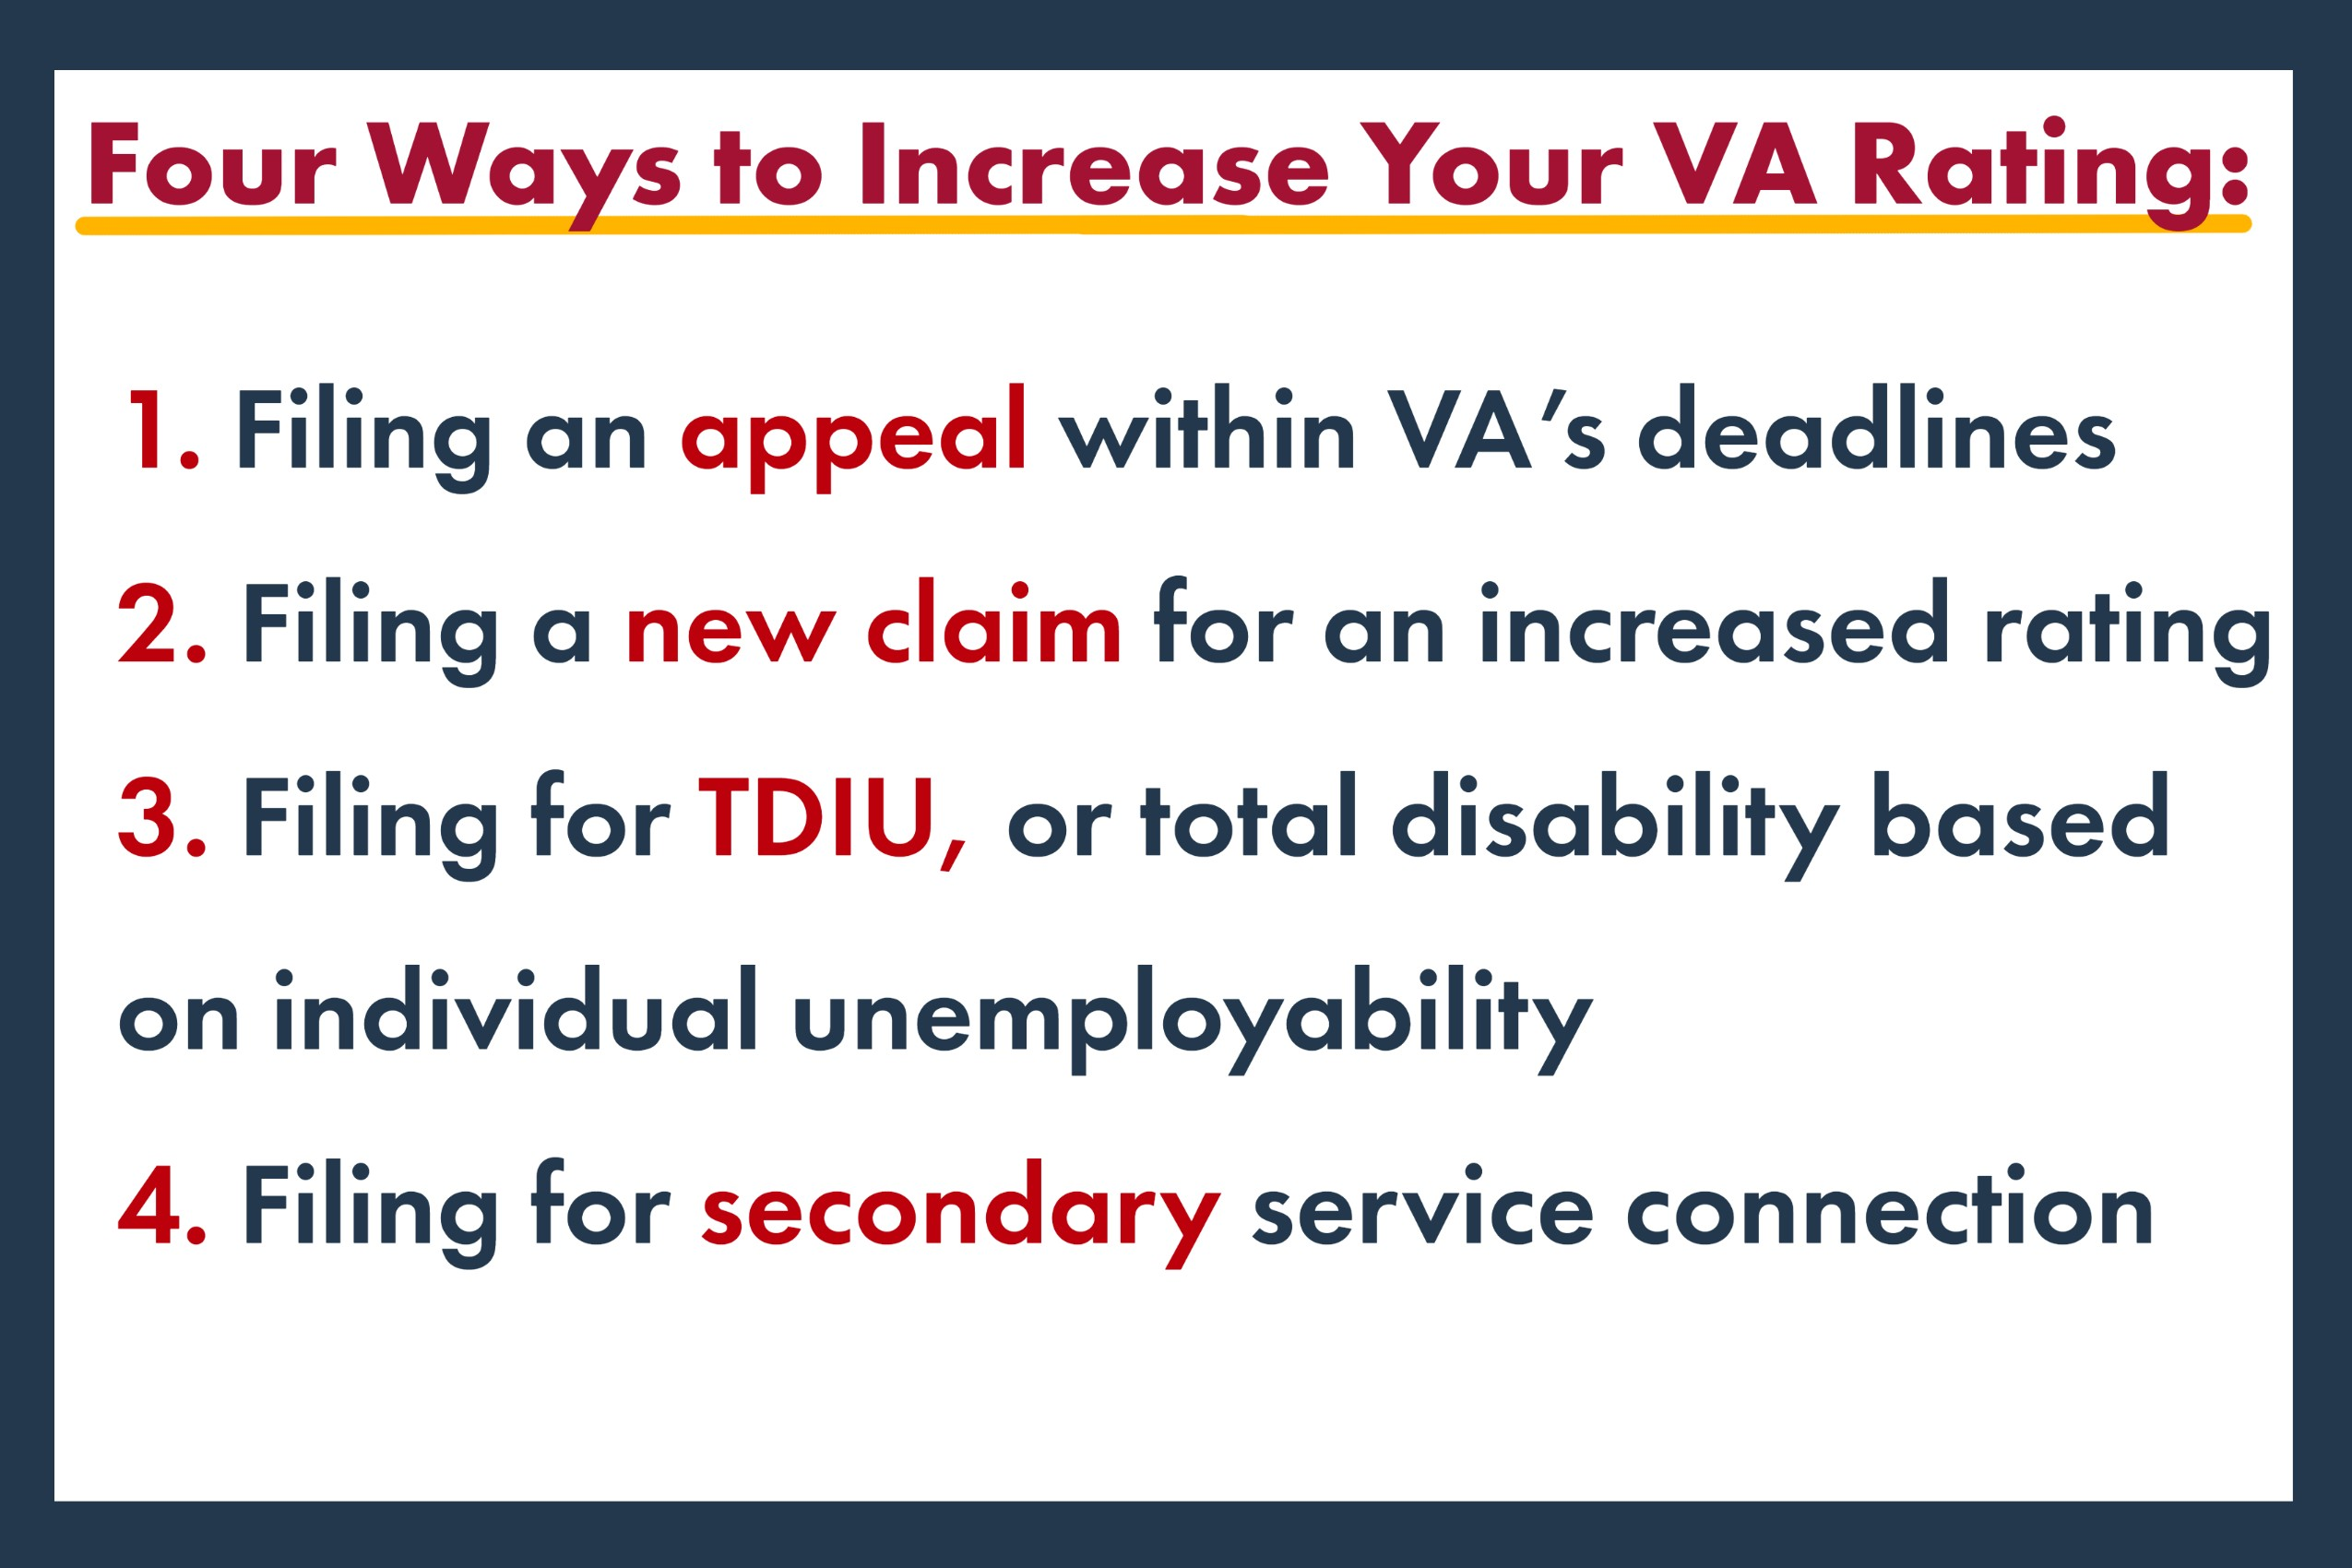 Four Ways to Increase Your VA Rating: 1. Filing an appeal within VA's deadlines 2. Filing a new claim for an increased rating 3. Filing for TDIU, or total disability based on individual unemployability 4. Filing for secondary service connection